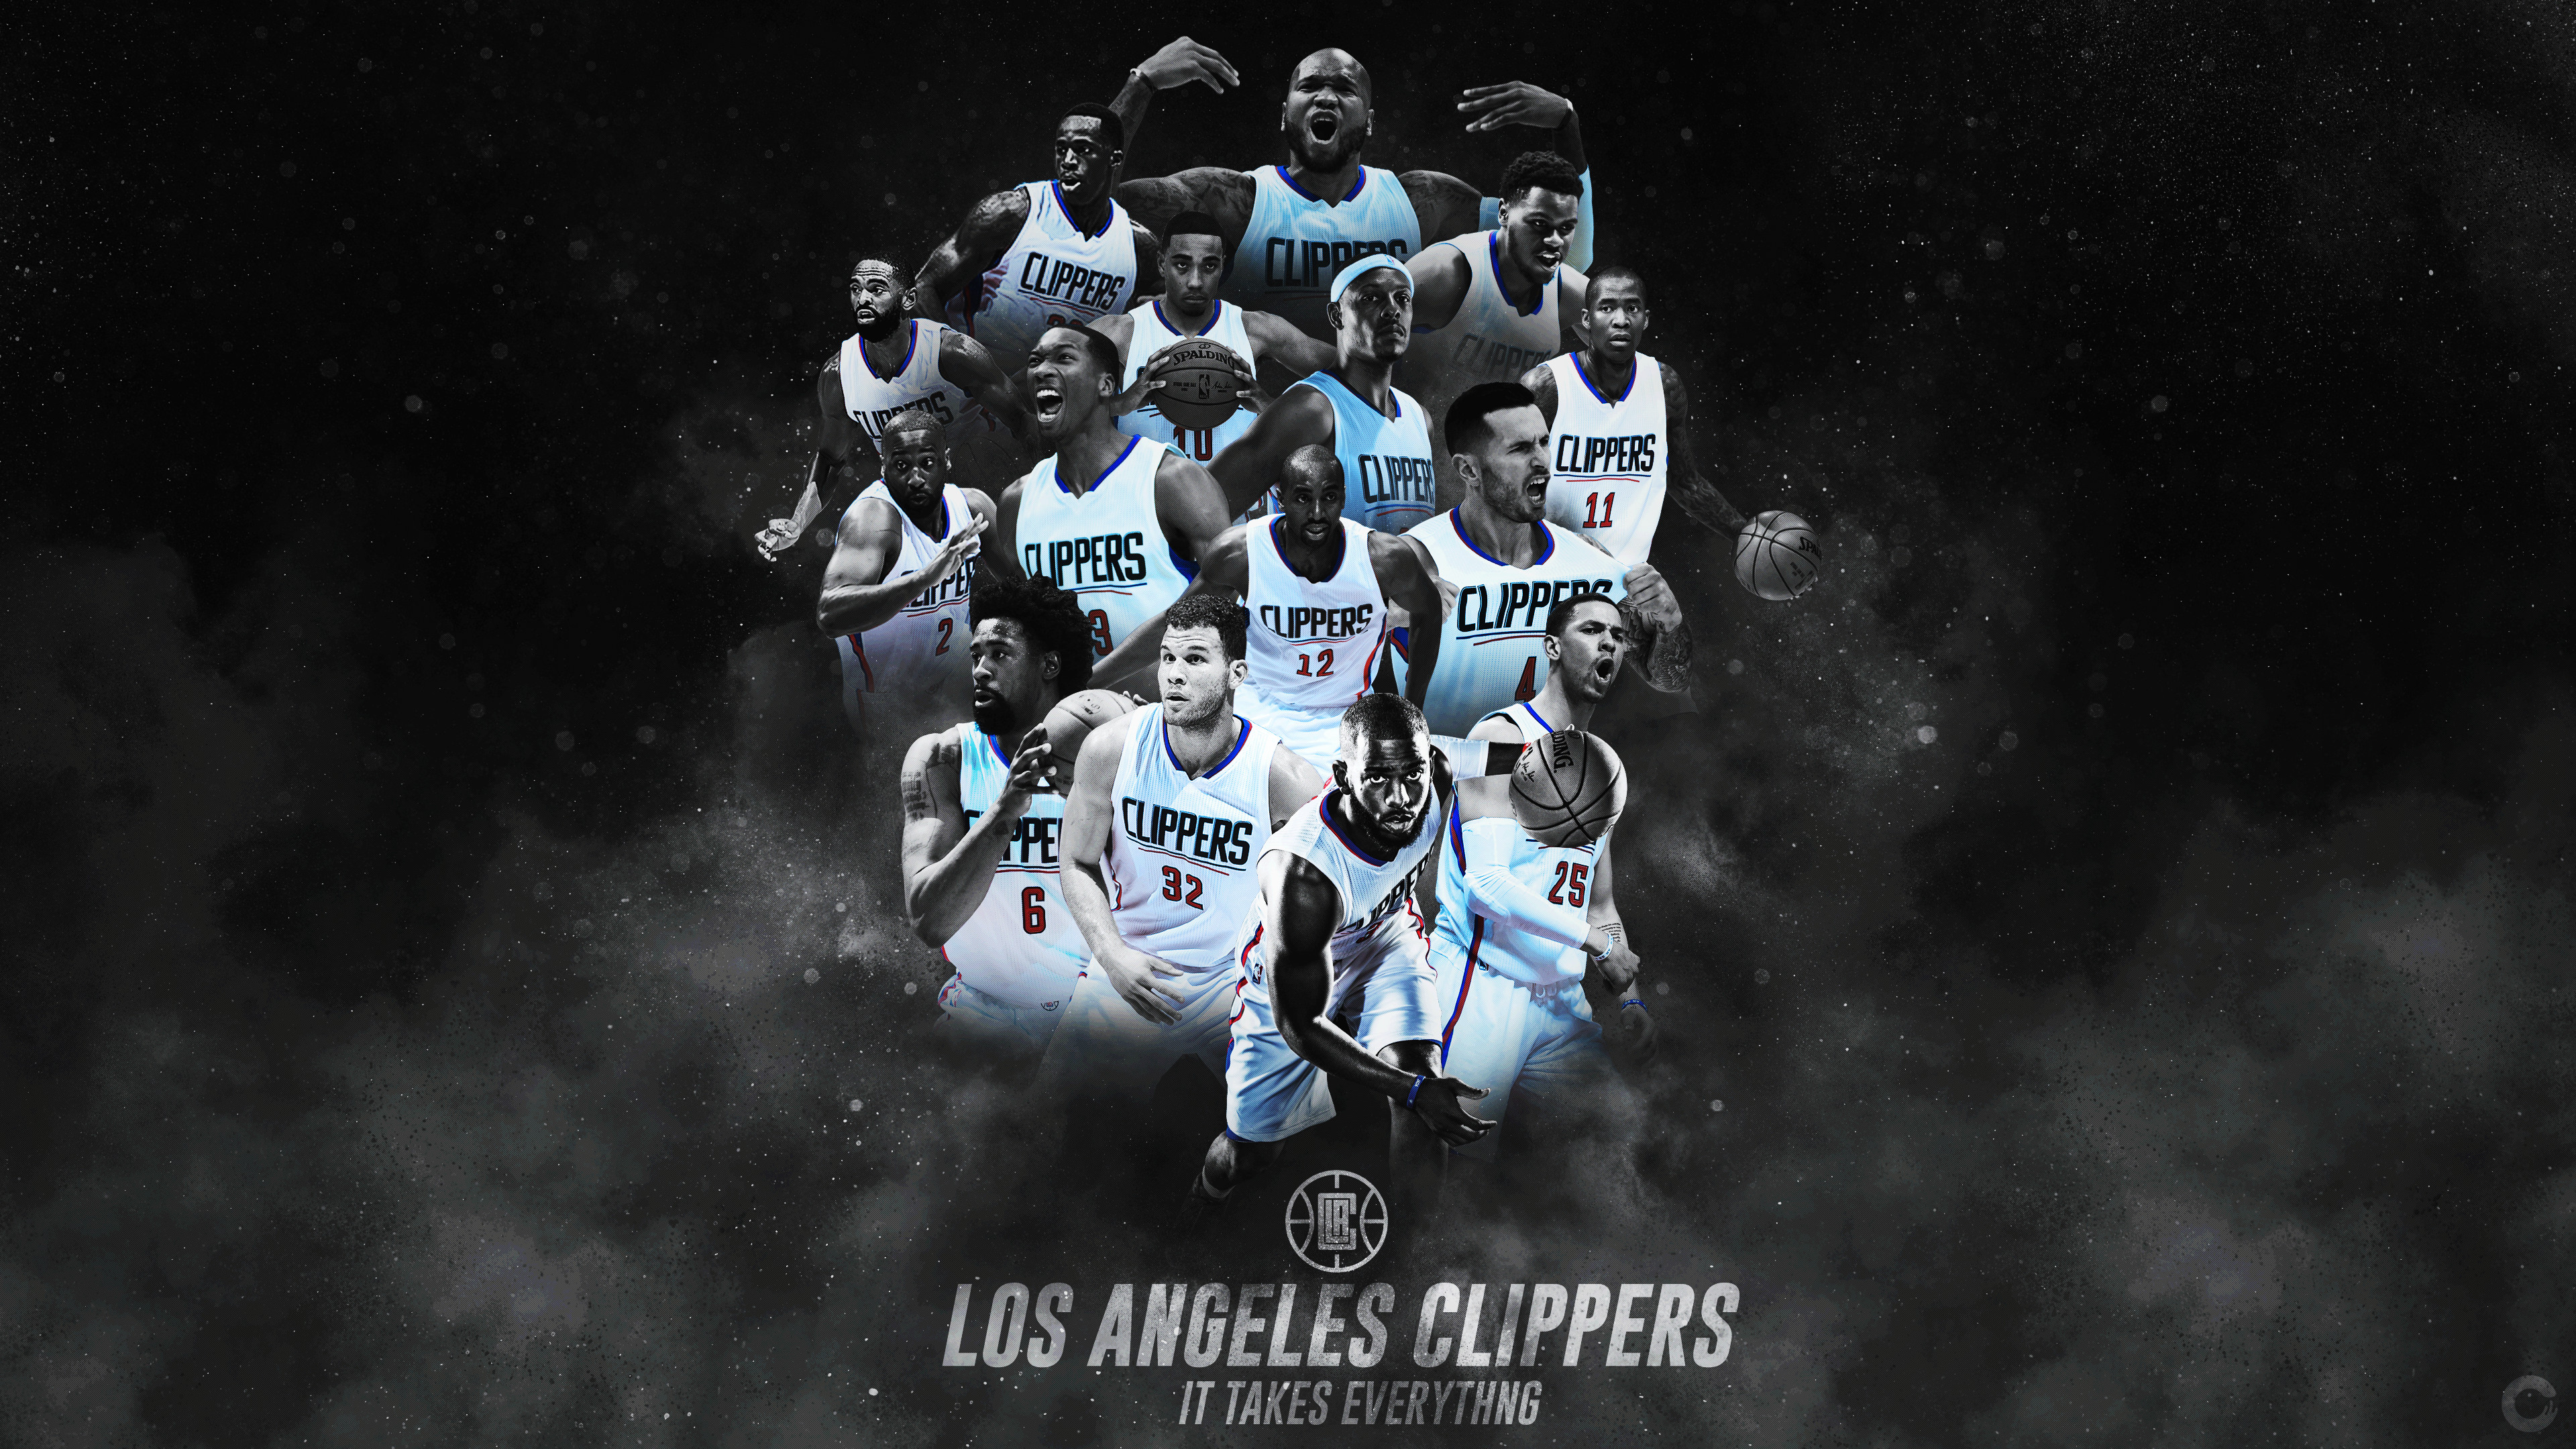 Los Angeles Clippers Wallpapers - Los Angeles Clippers 2017 , HD Wallpaper & Backgrounds